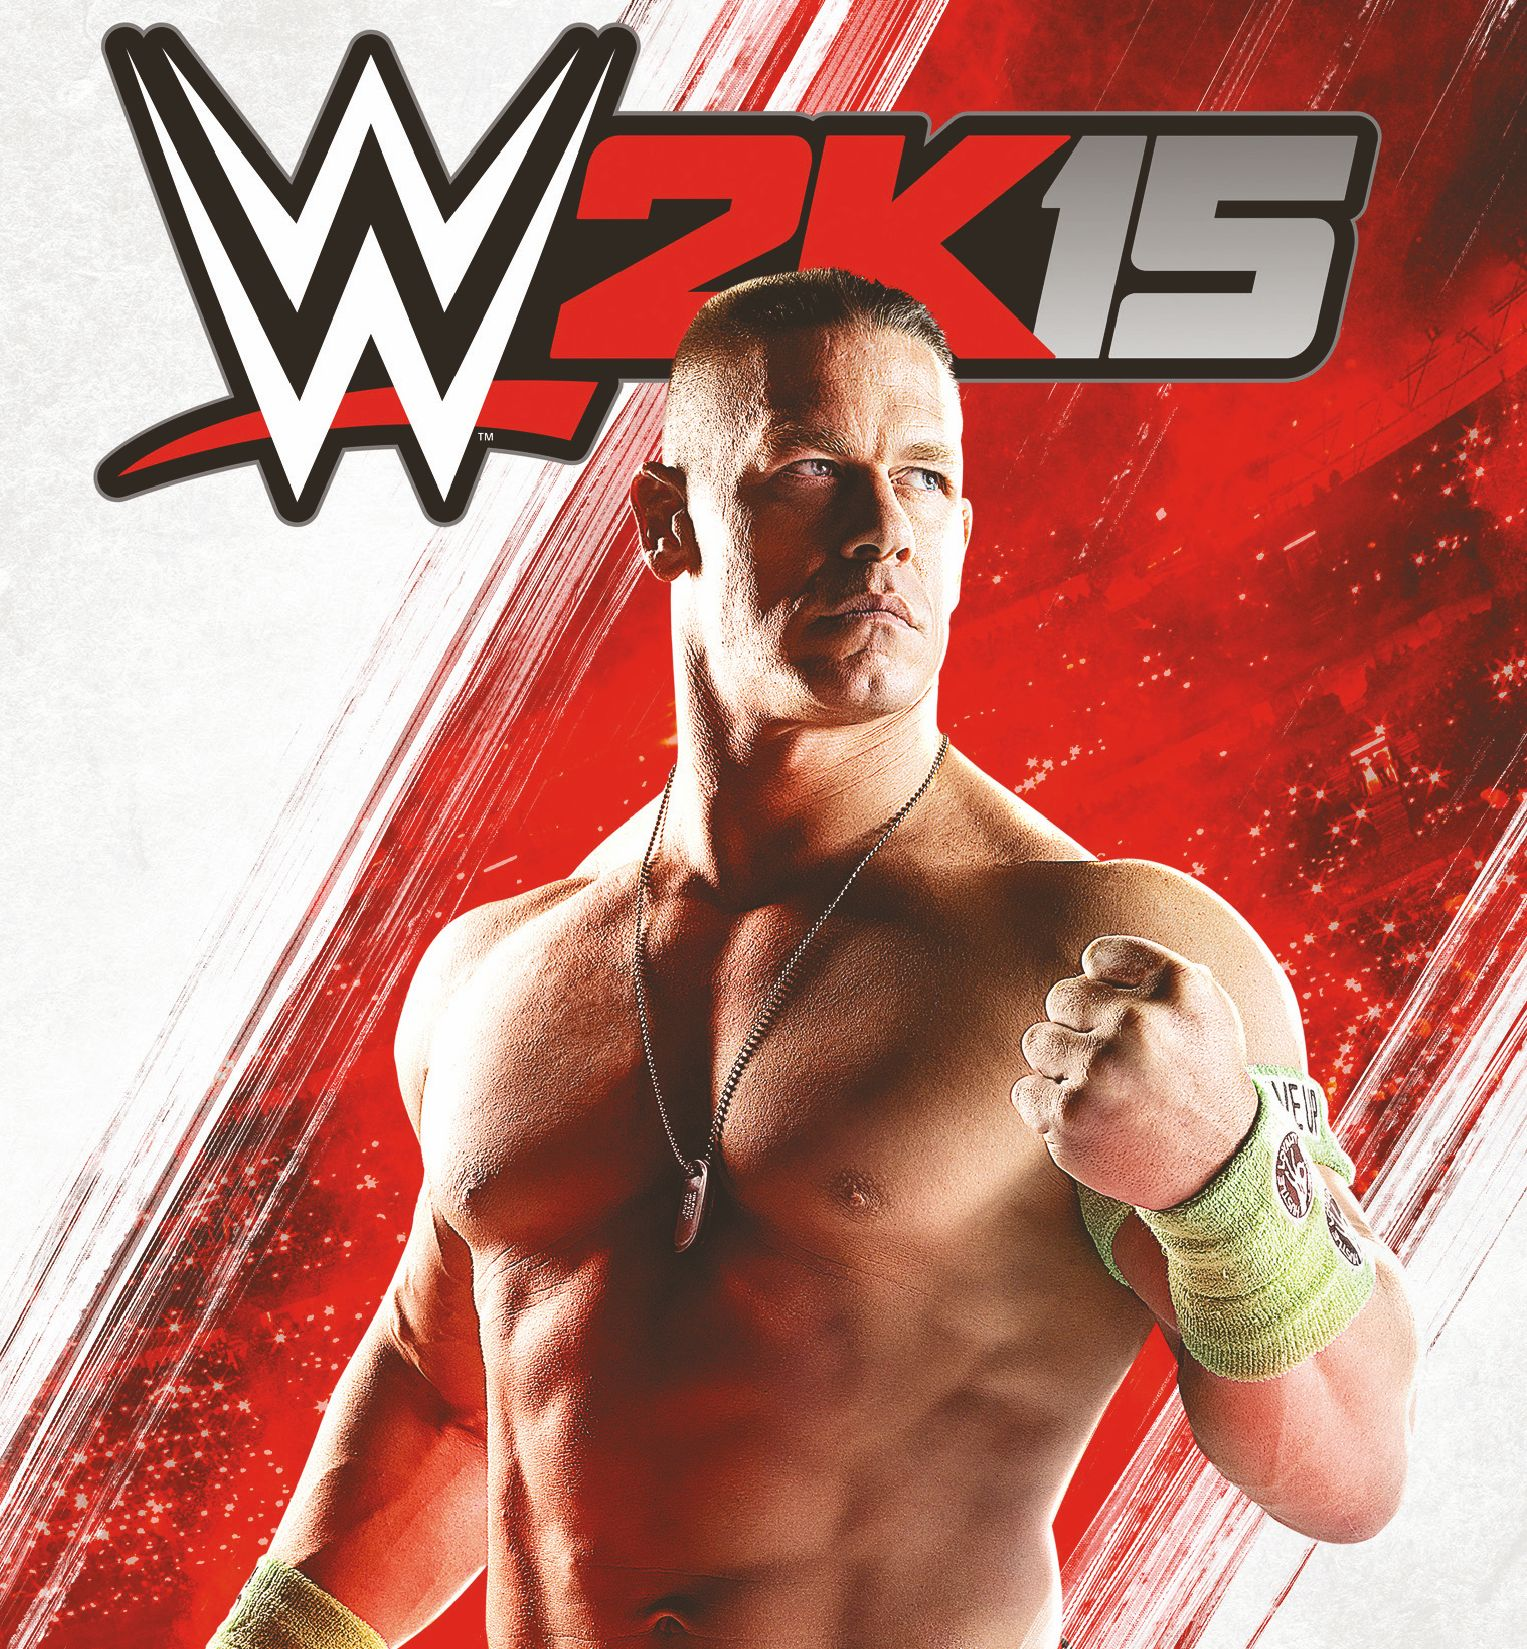 WWE 2K15 review – step back in time